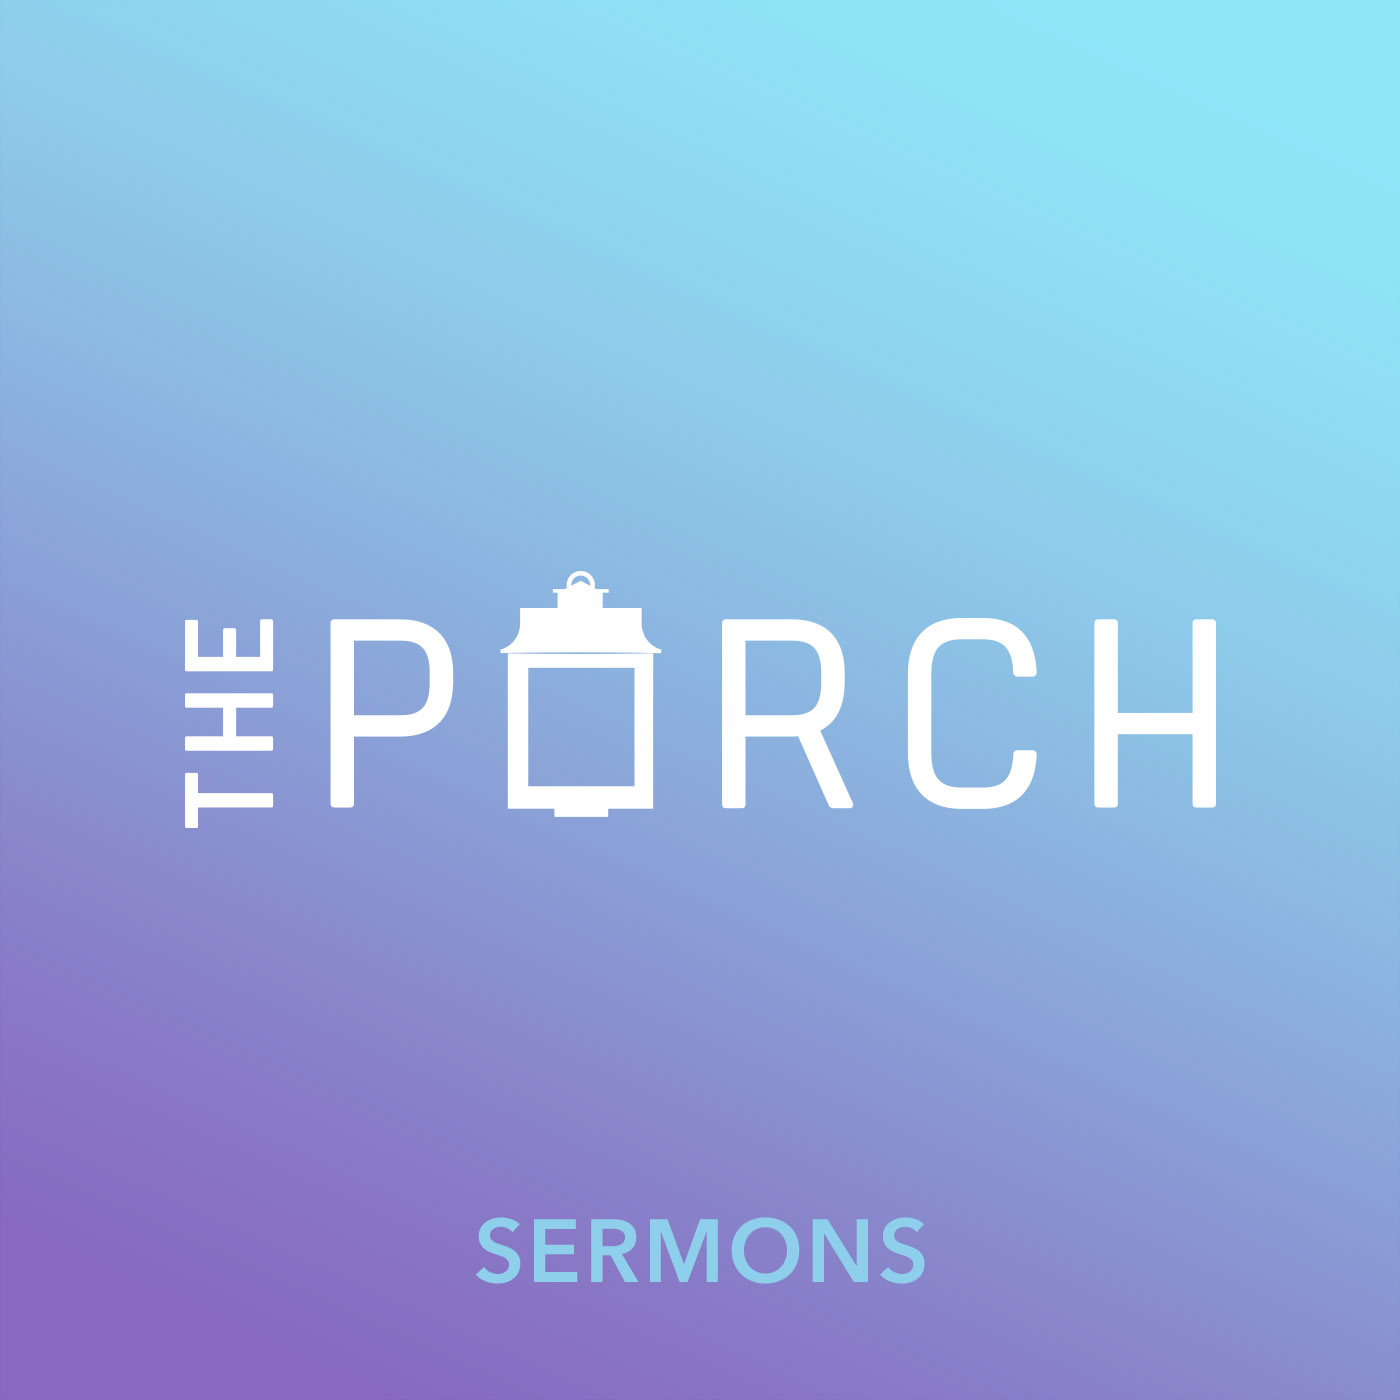 Watermark Video: The Porch Channel